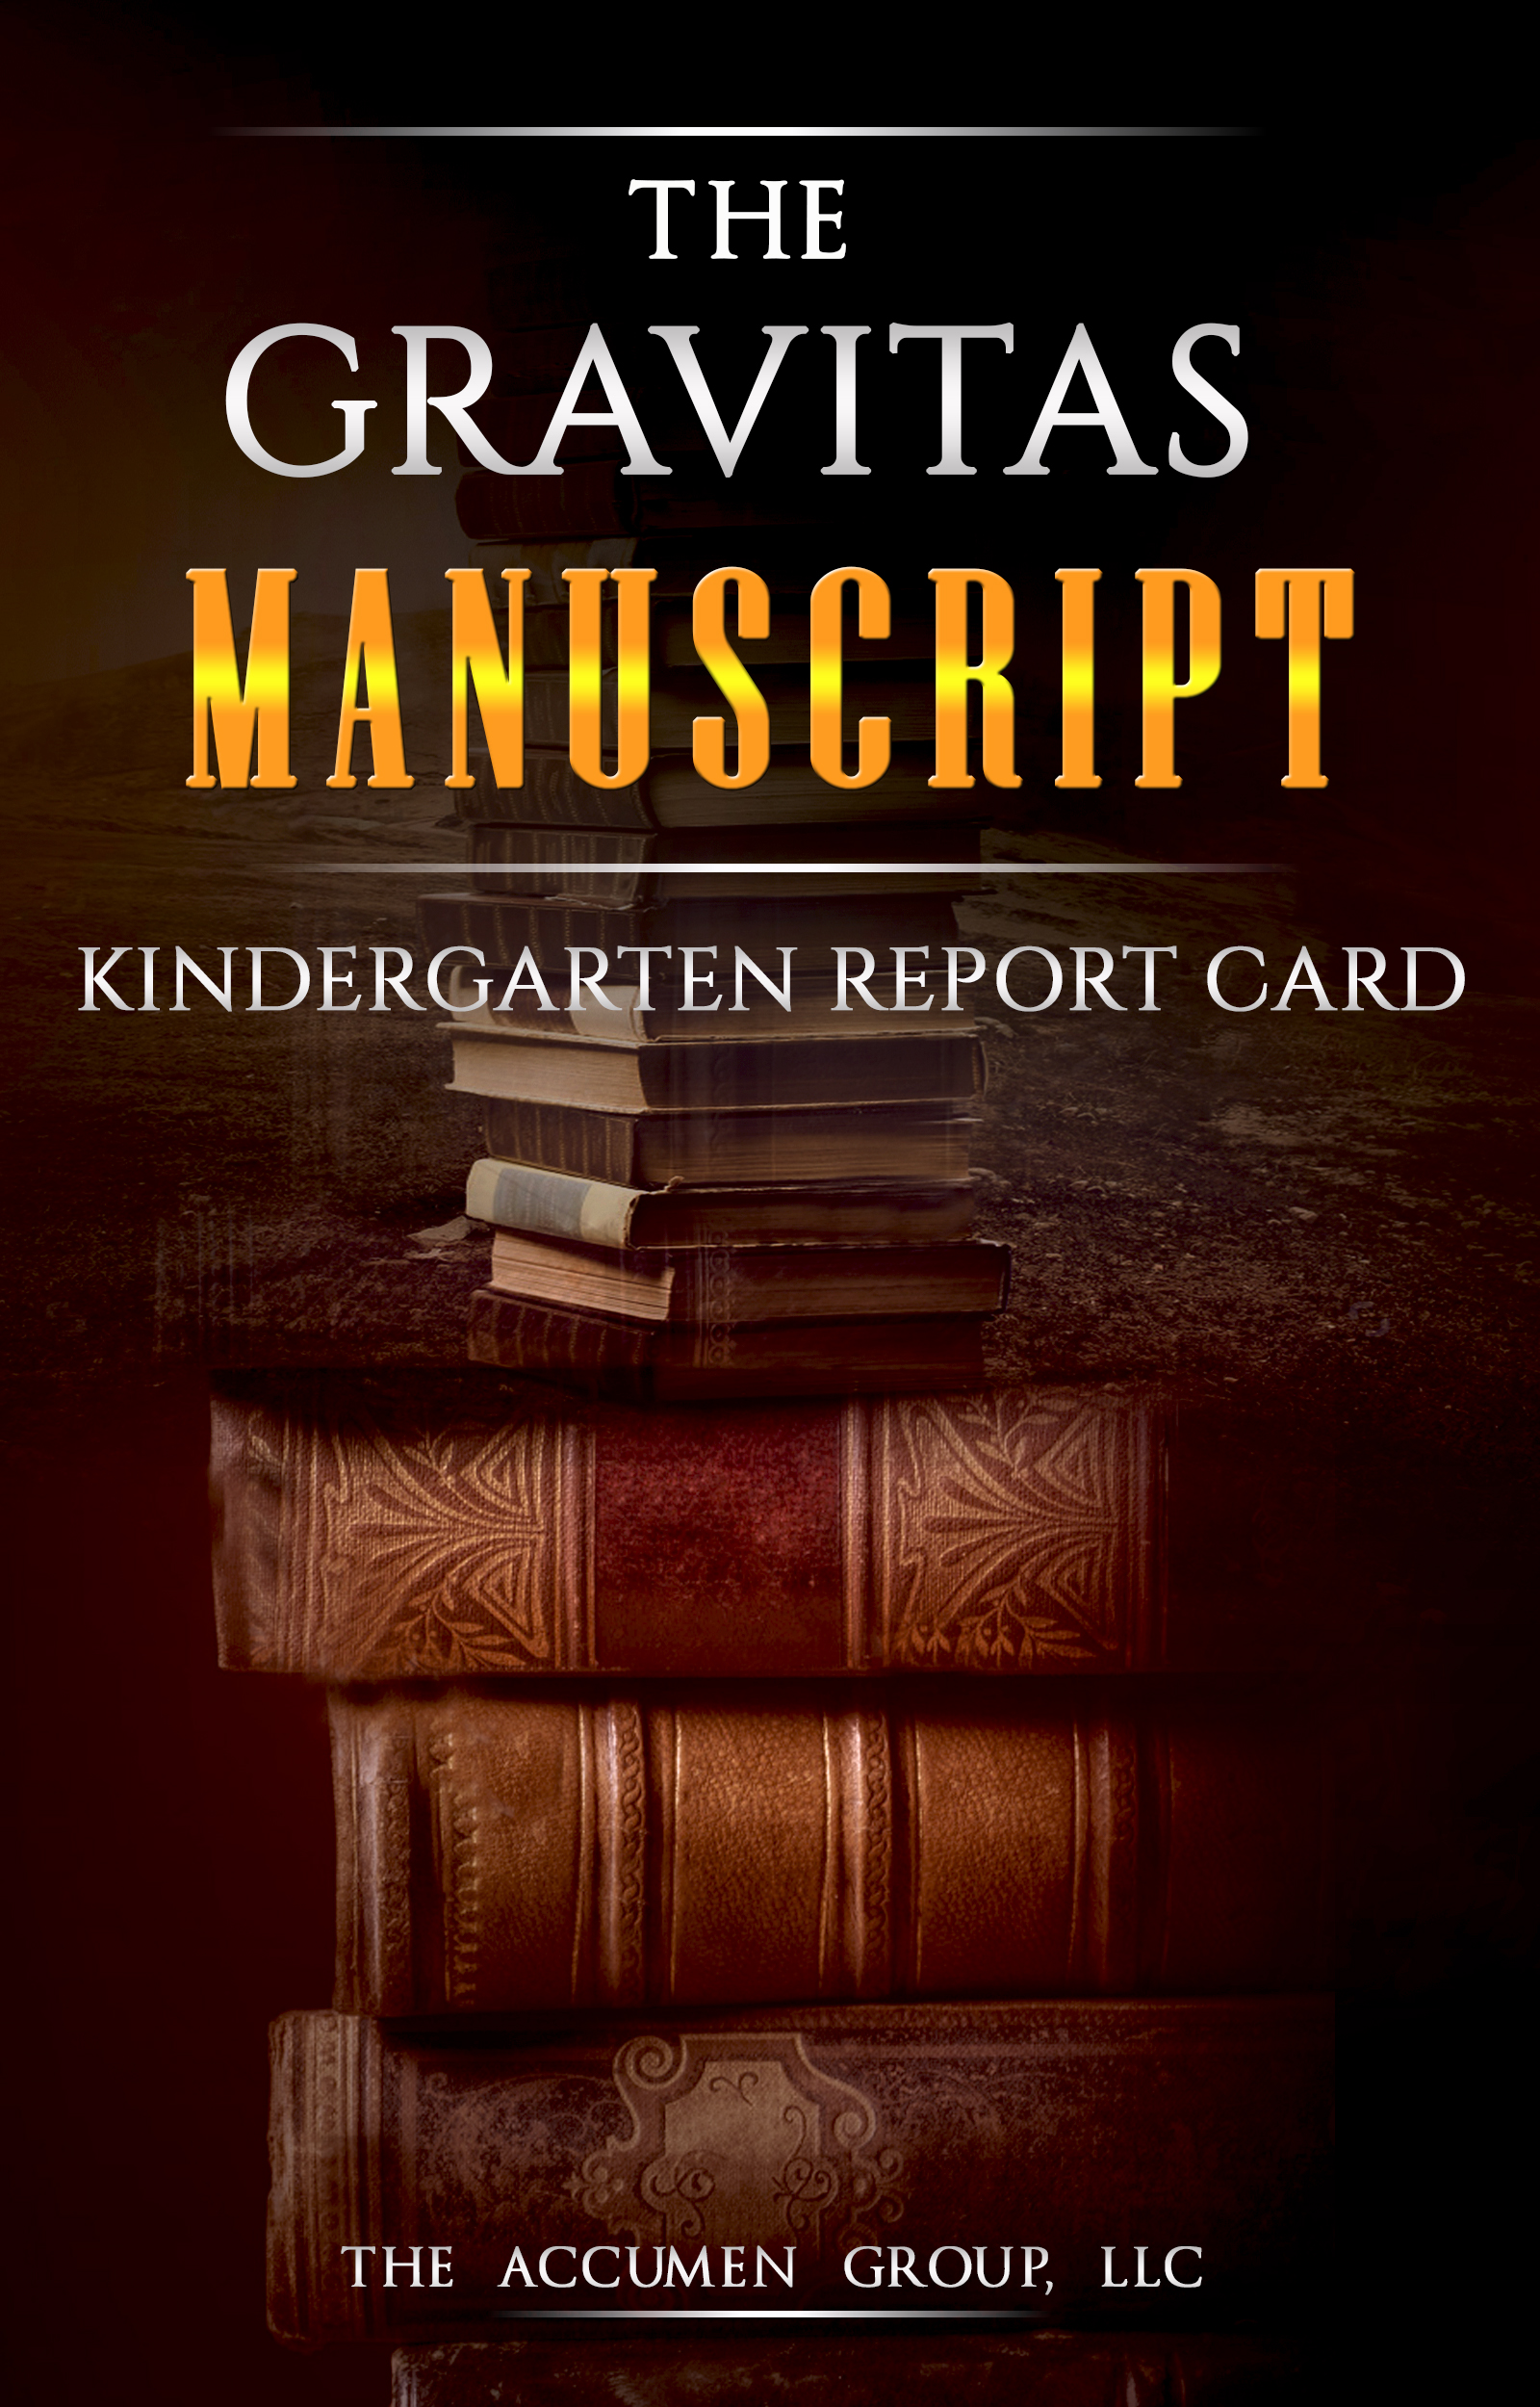 The Gravitas Manuscript: Kindergarten Report Card    Download our free printable PDF file to help evaluate where you stand now, and your progress in the future.  An essential tool for anyone aiming for self-improvement.